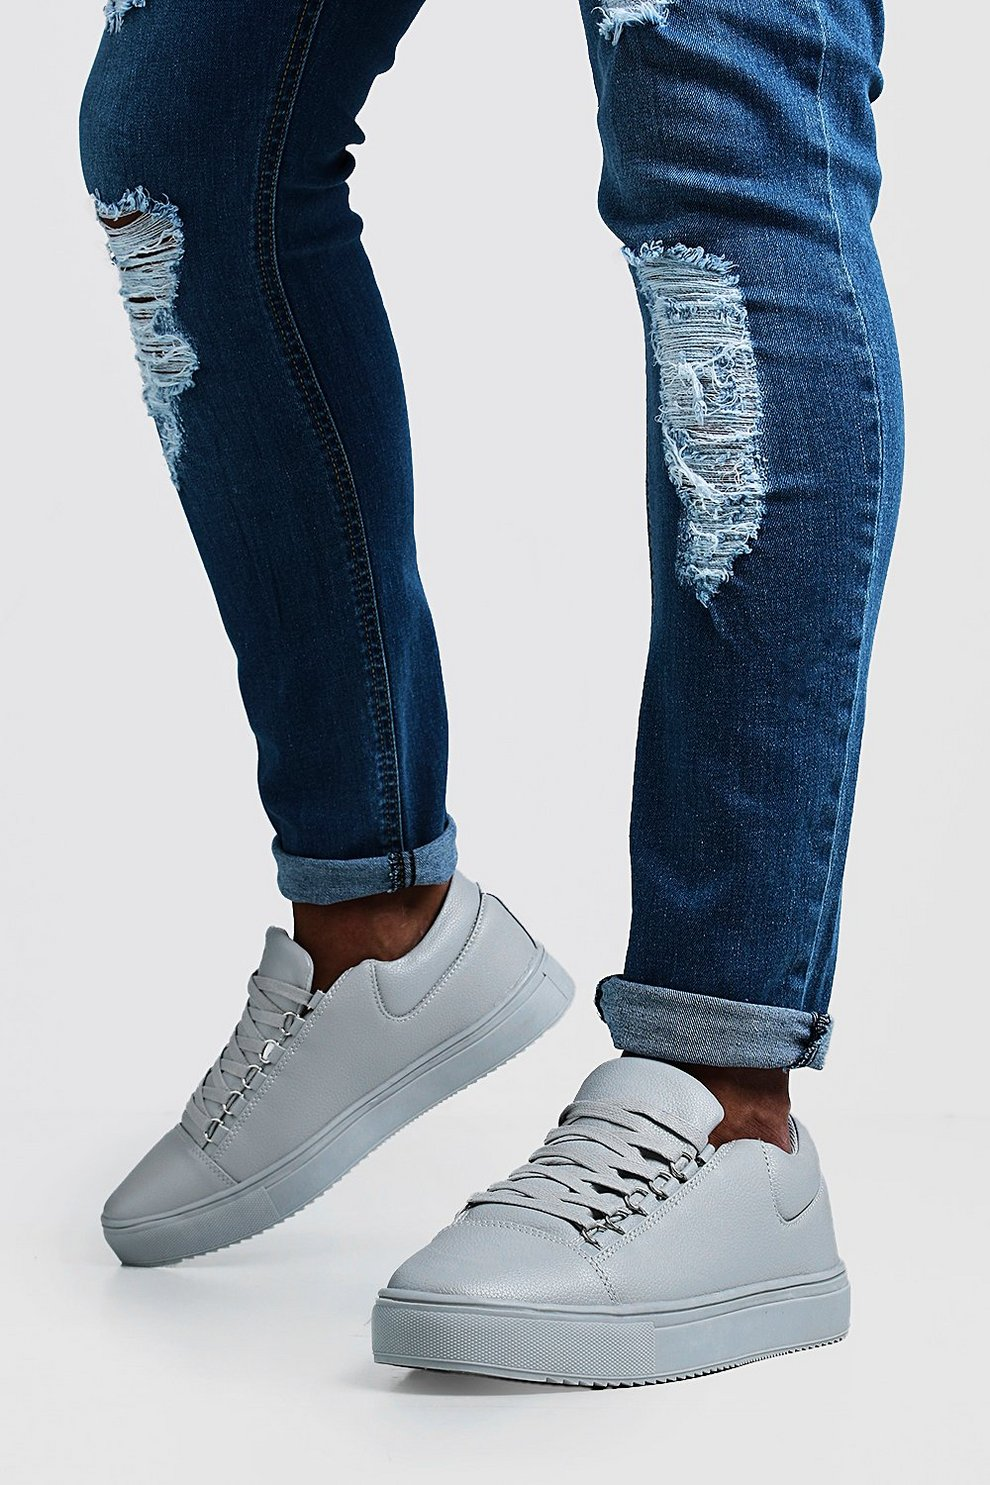 732c9b30d8a9 Eyelet Detail Faux Leather Trainer - boohooMAN